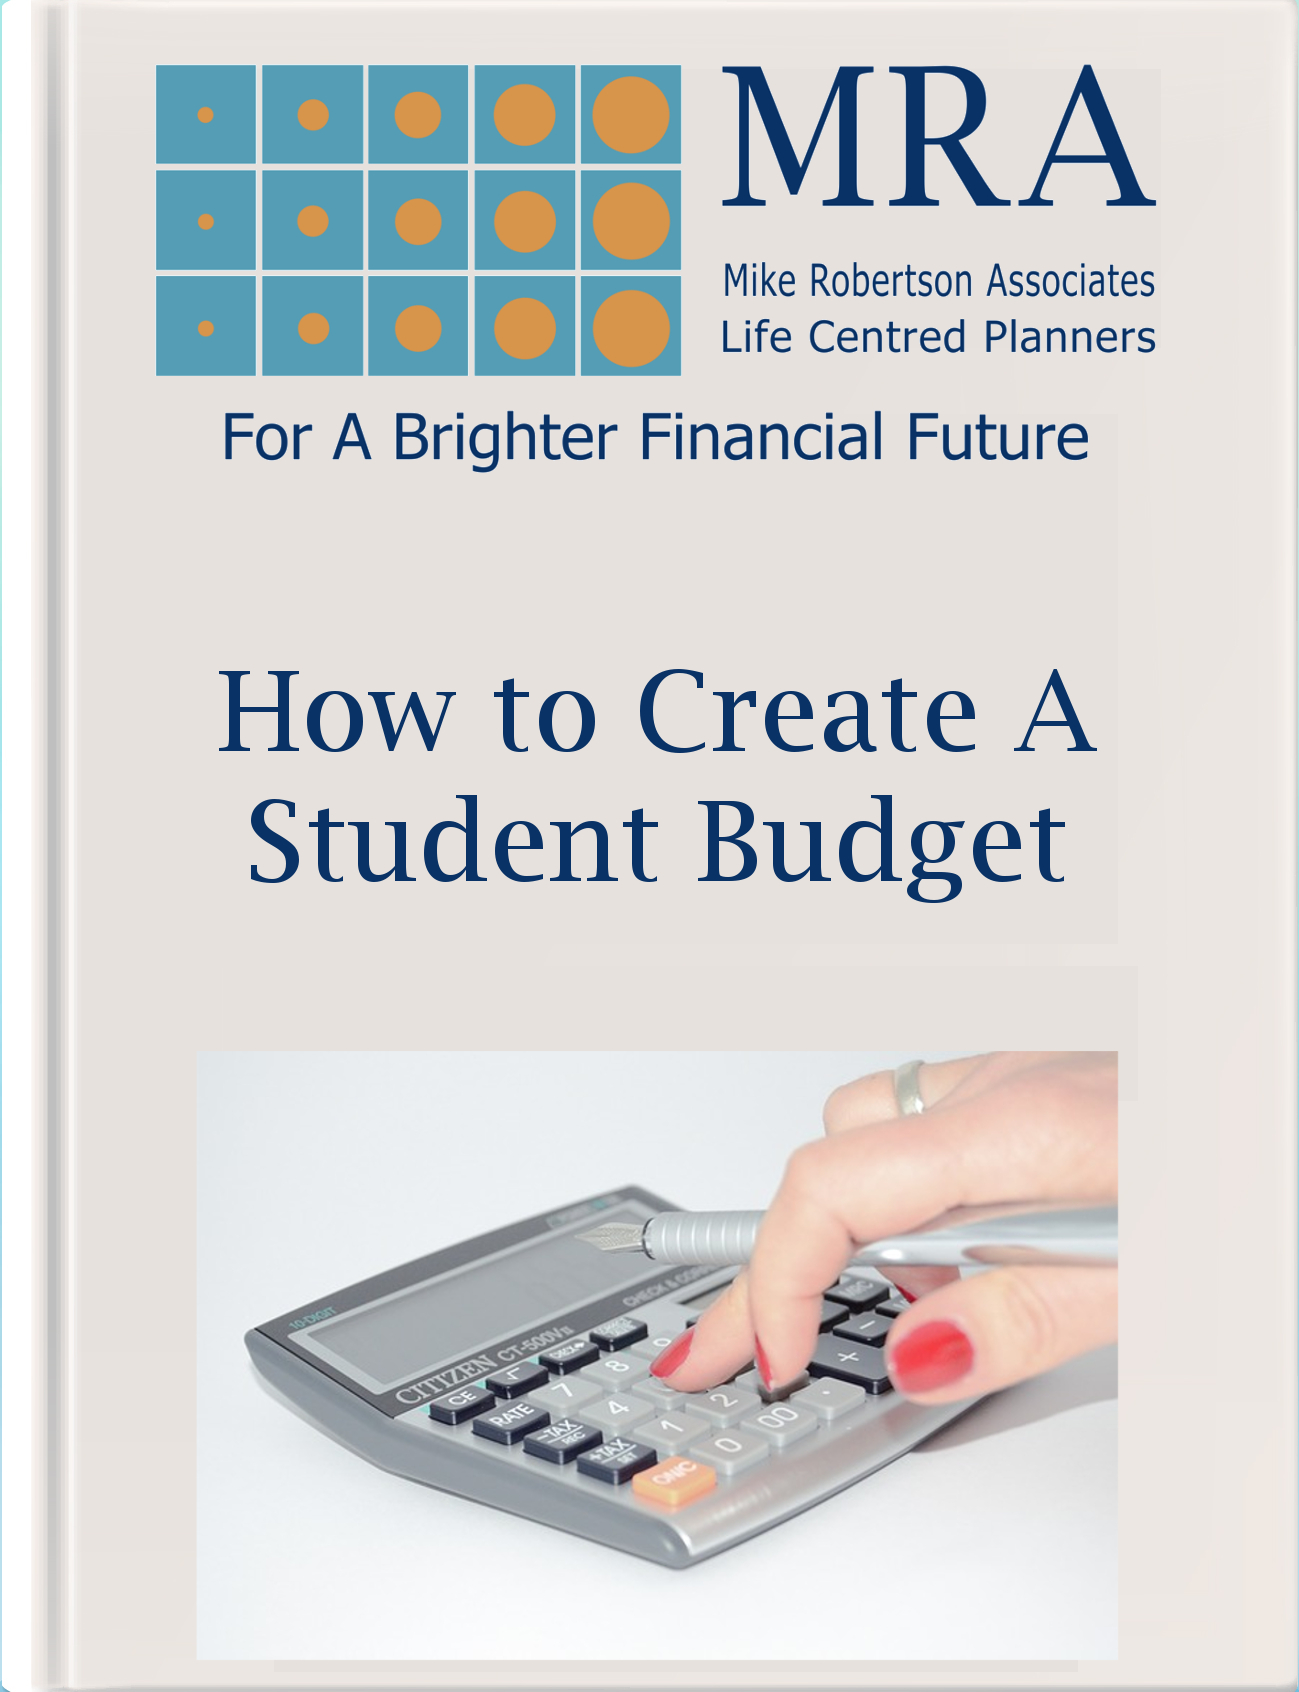 Download our Ebook for Creating a Student Budget Ebook